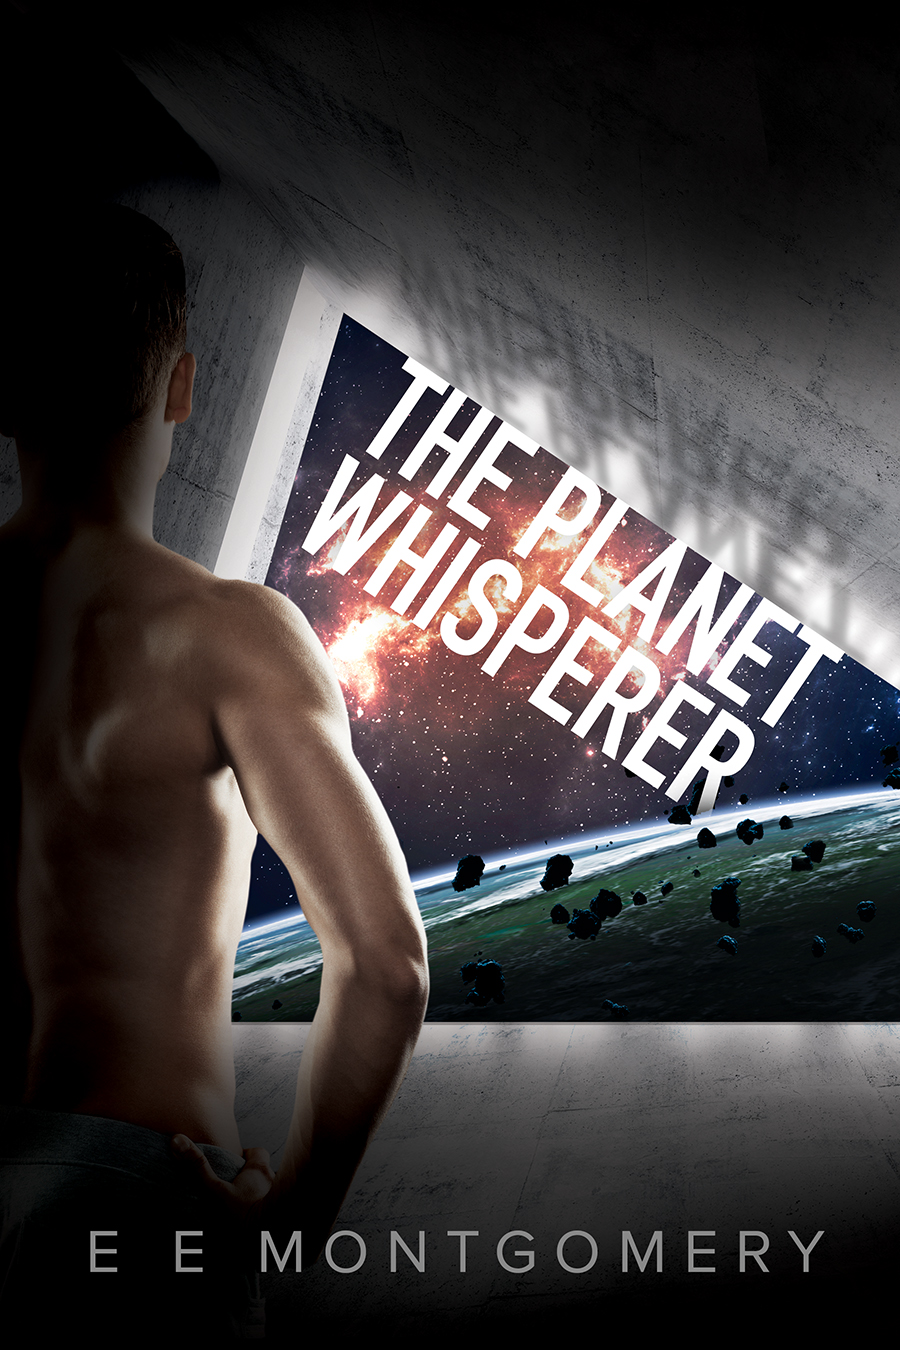 Throwback Thursday – The Planet Whisperer by E E Montgomery